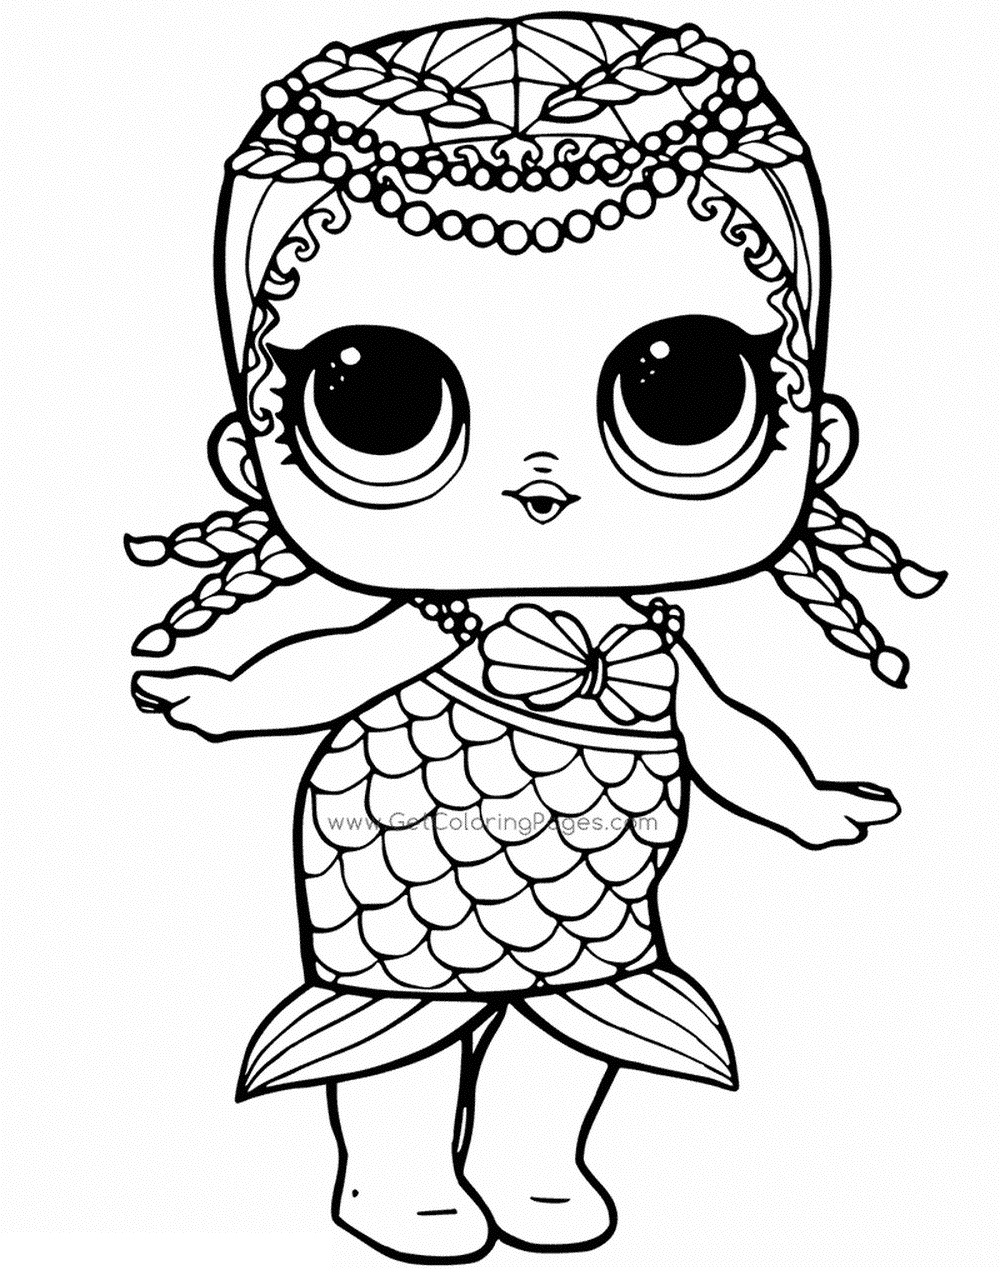 coloring pages lol LOL Surprise Dolls Coloring Pages. Print out for Free! All the Series! coloring pages lol